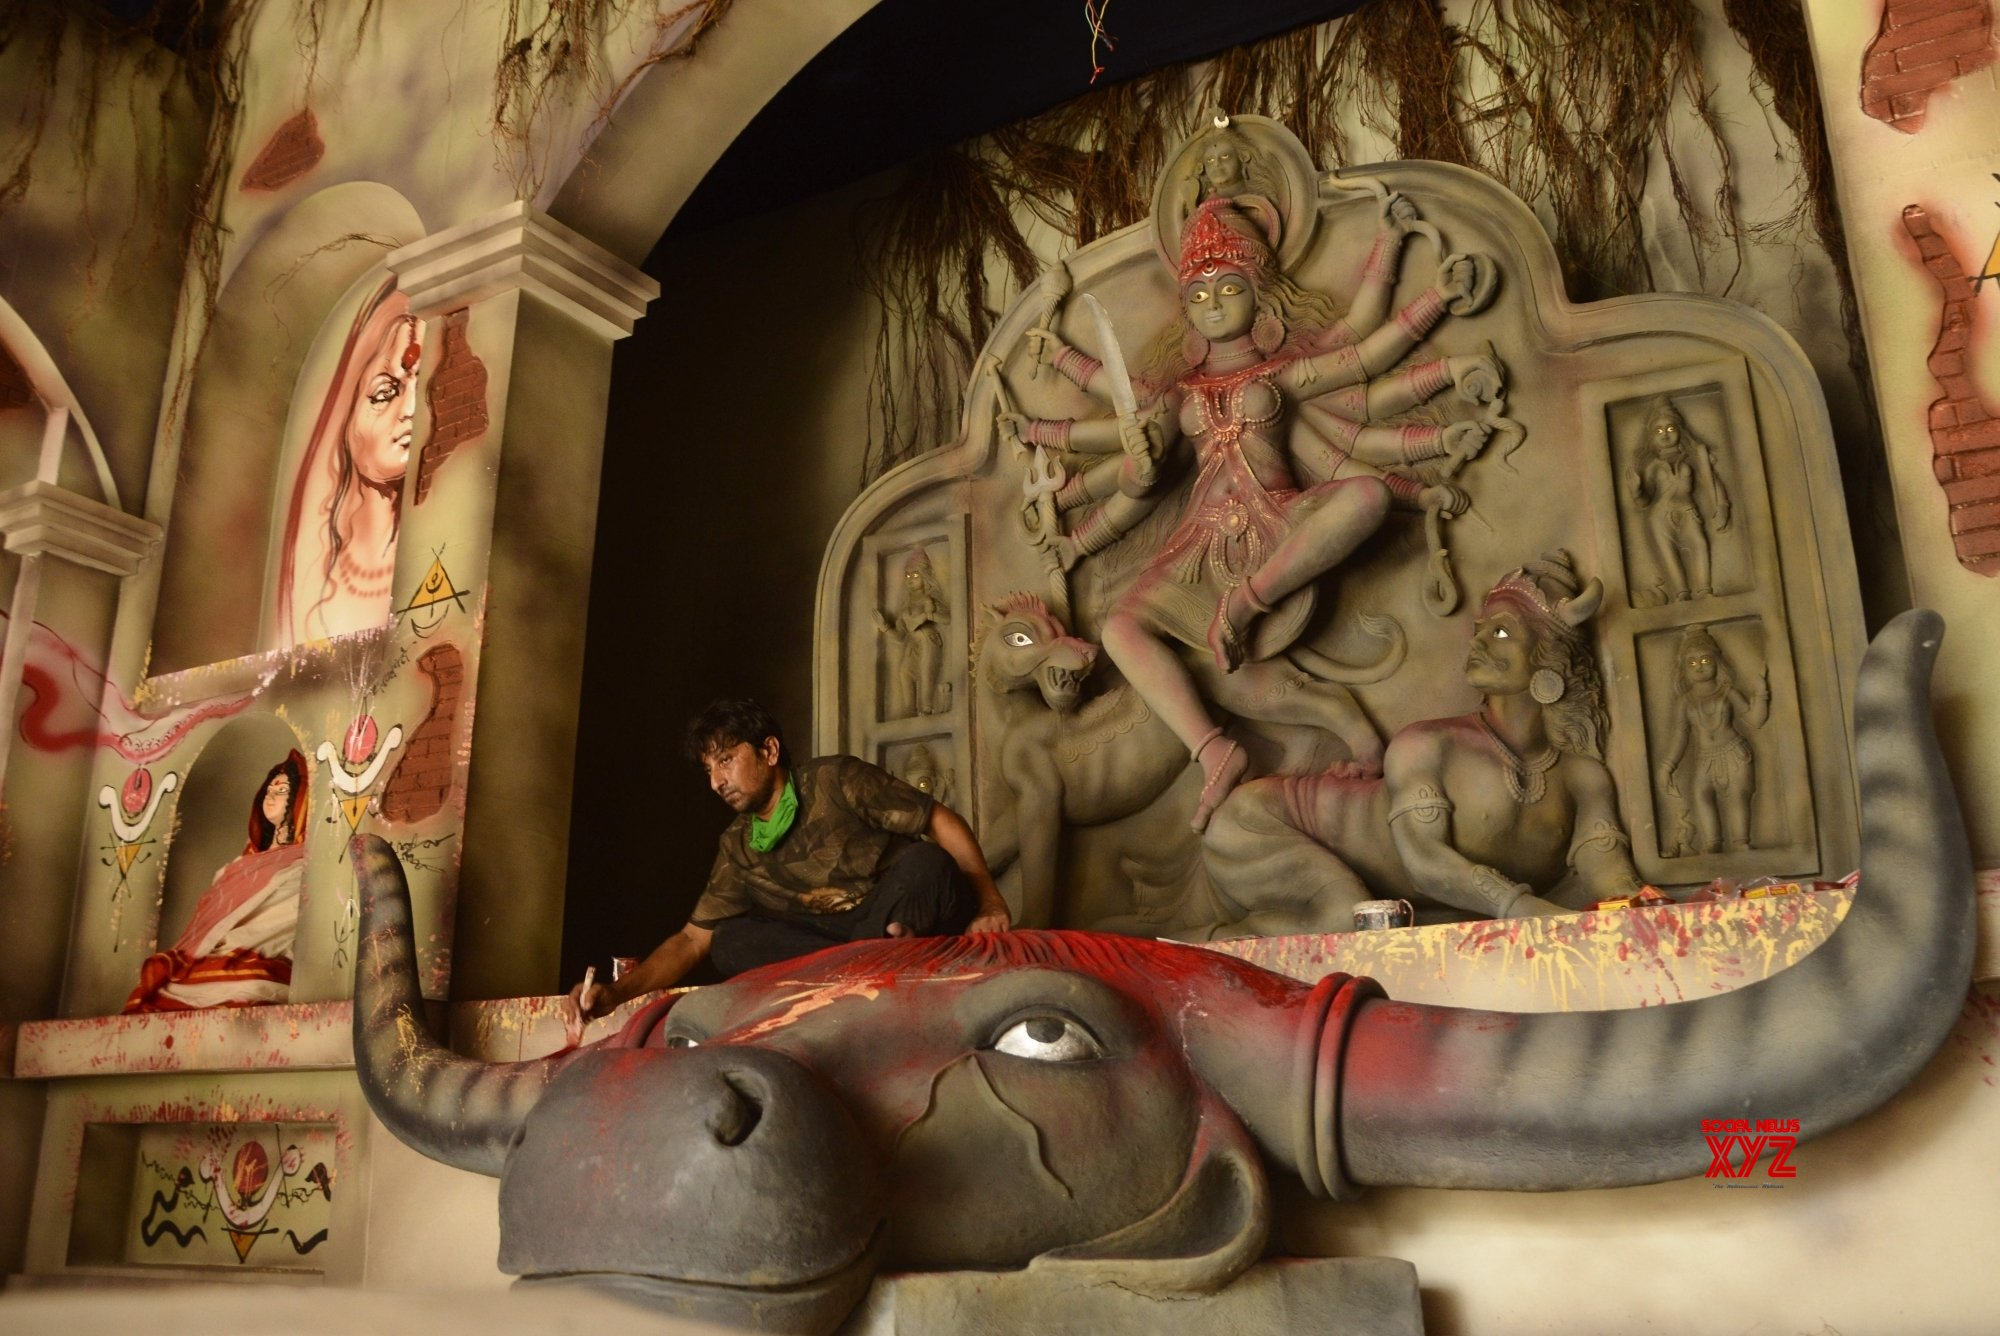 Kolkata: Artist gives finishing touches to an idol of Goddess Durga at the community Puja pandal ahead of Durga Puja festival #Gallery